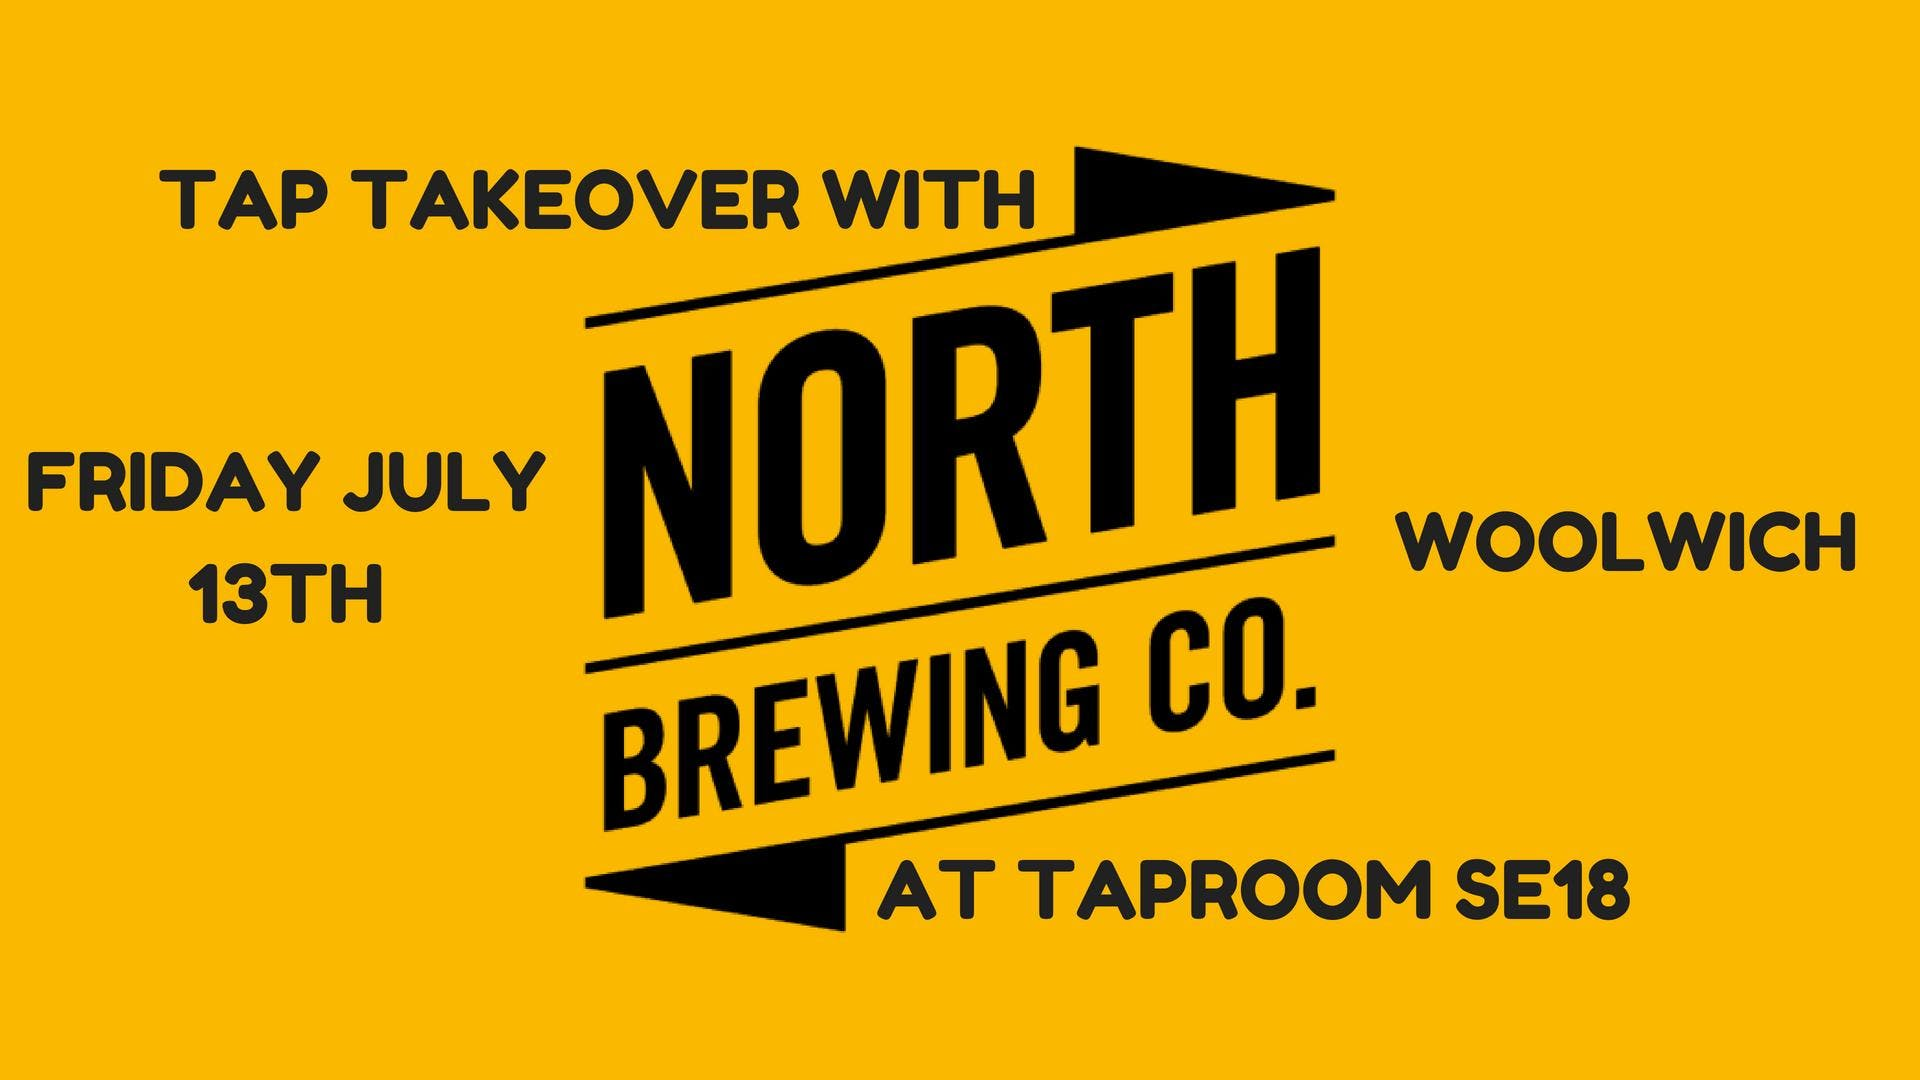 Tap Takeover With North Brewing Co